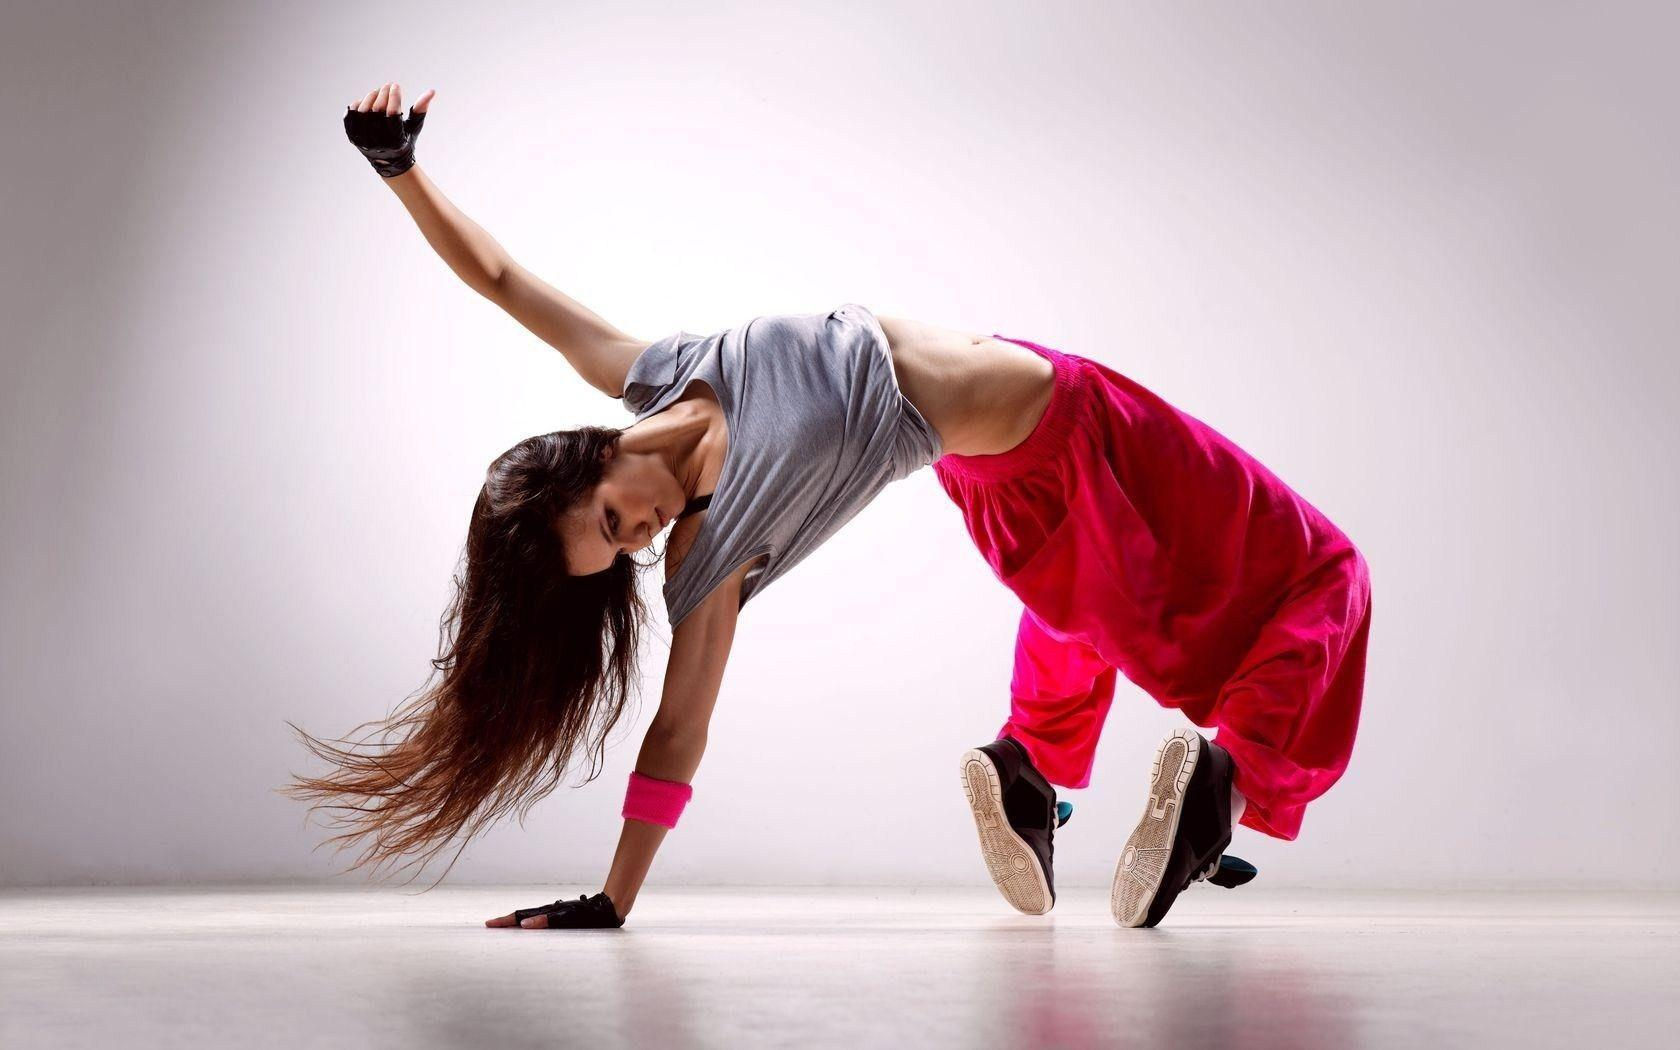 Cool Girl Dance HD Wallpapers